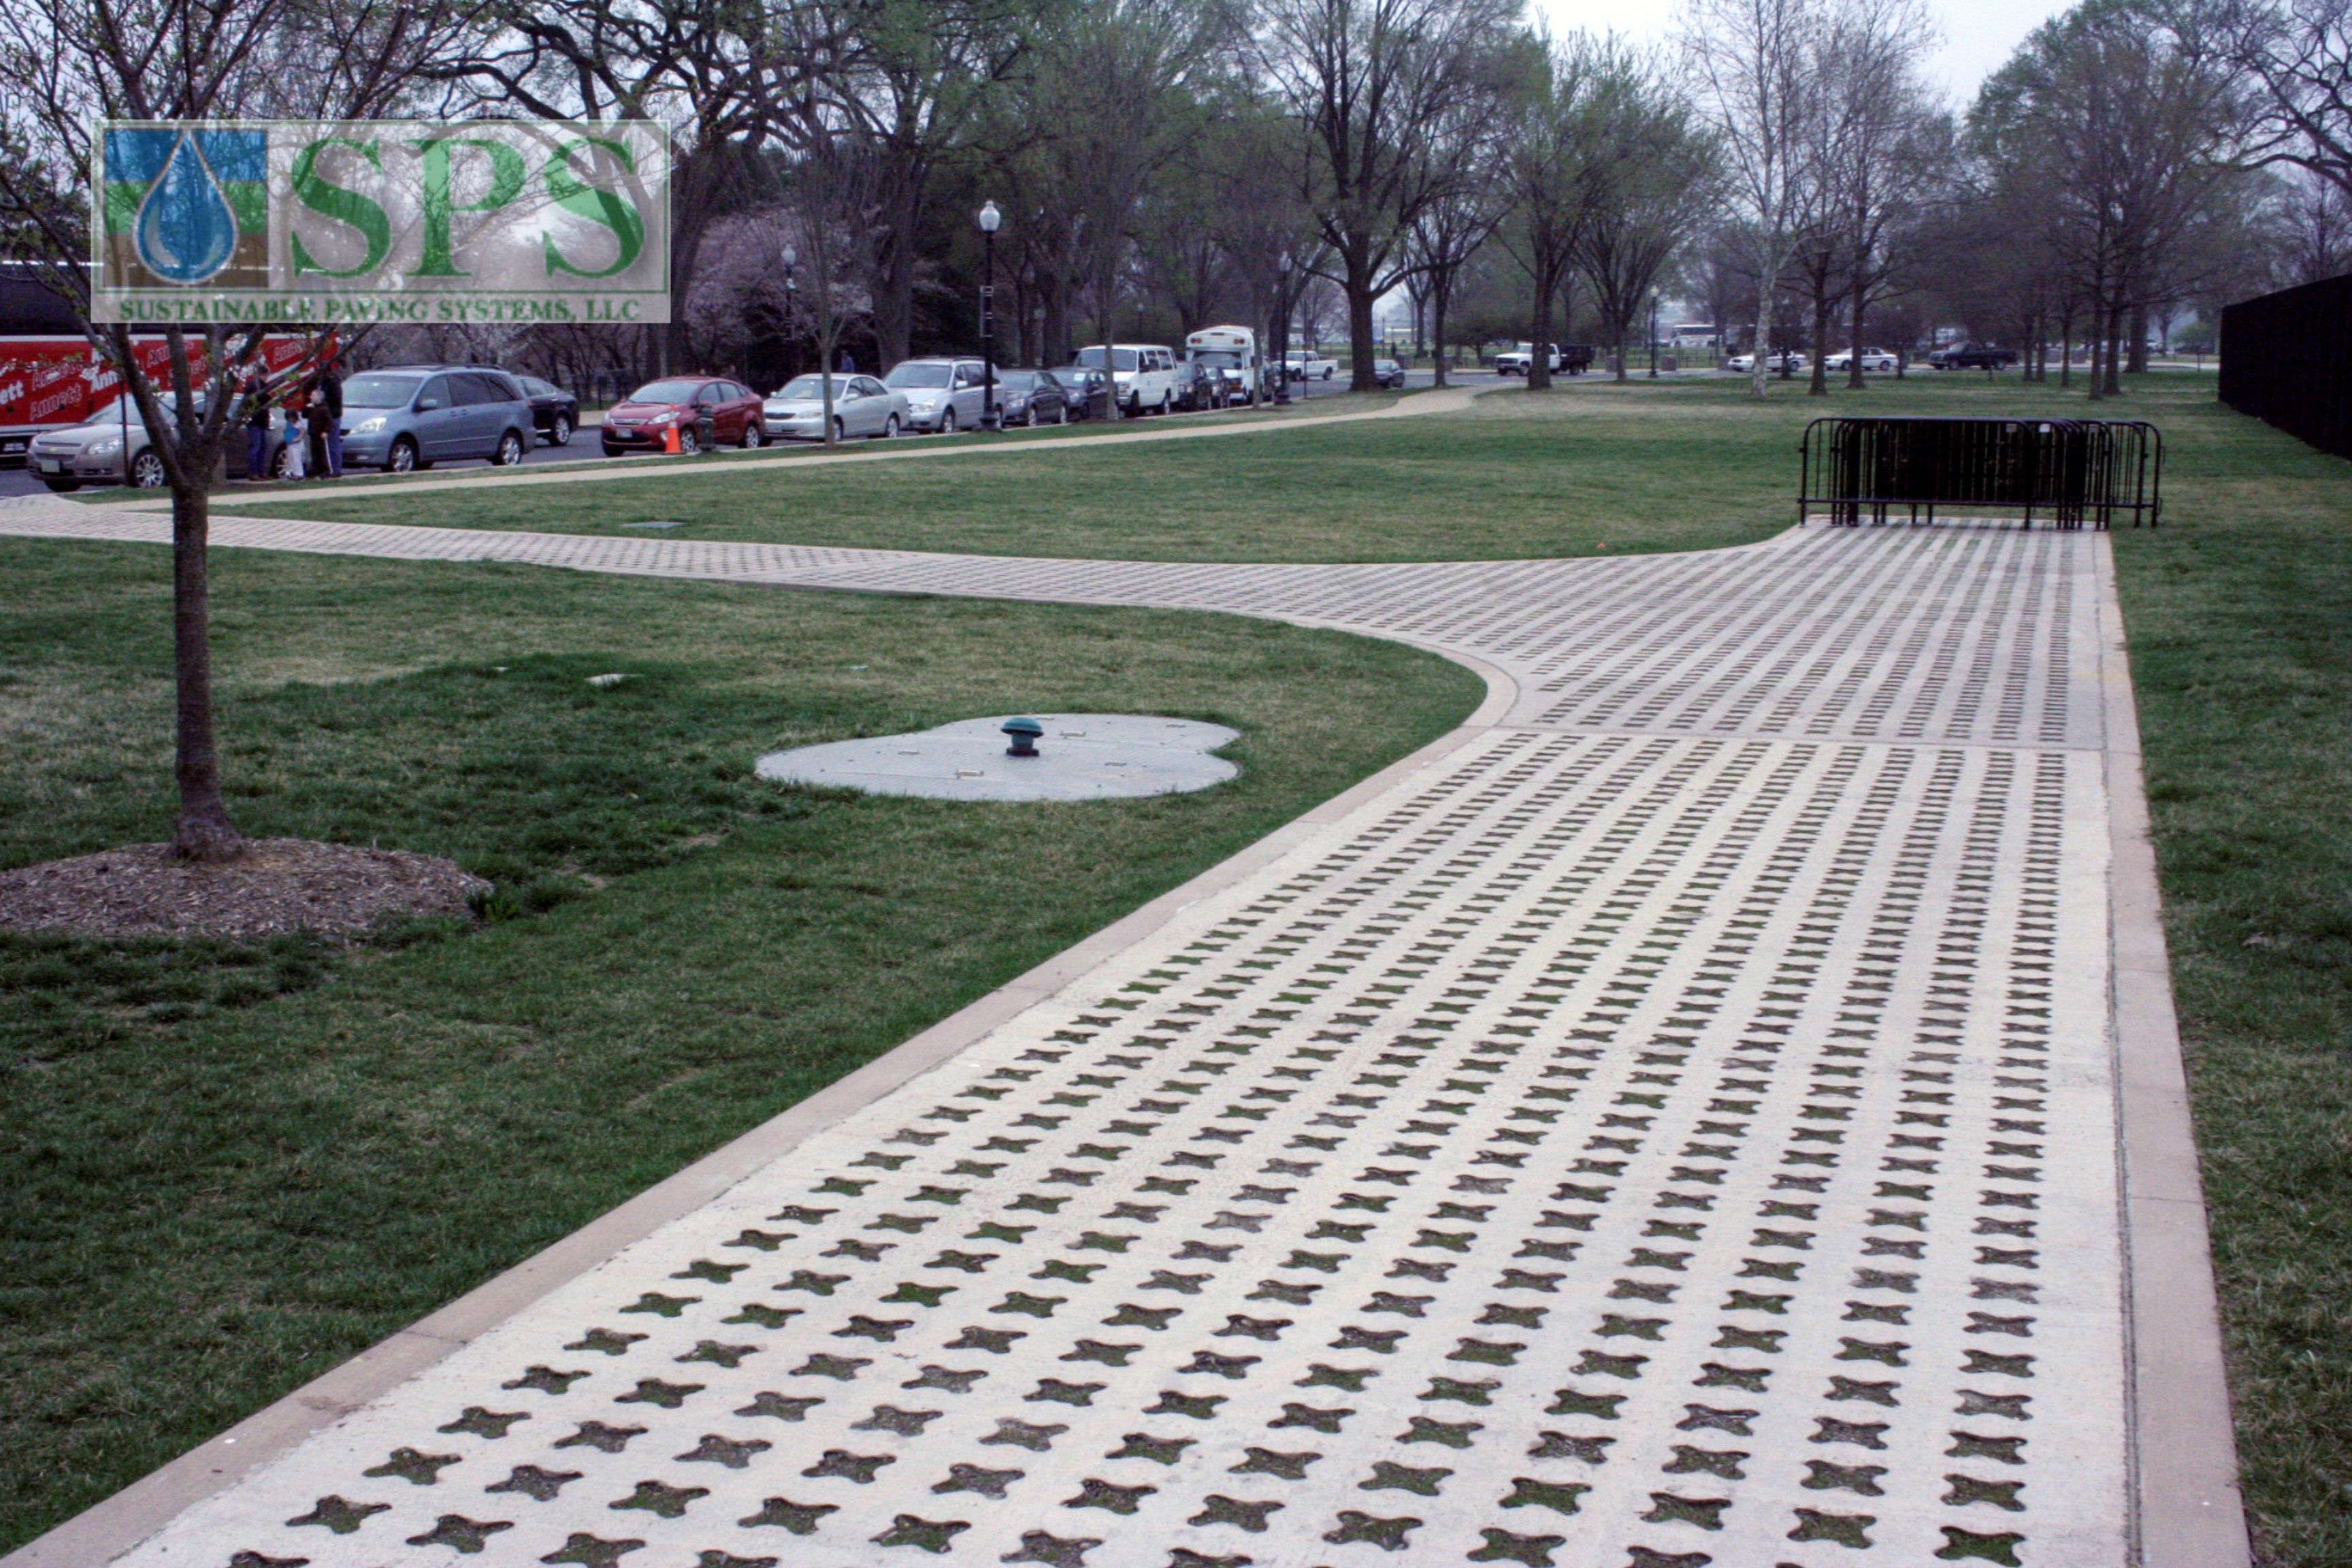 Grasscrete Mlk National Memorial Vehicle Access Partially Conceealed_01